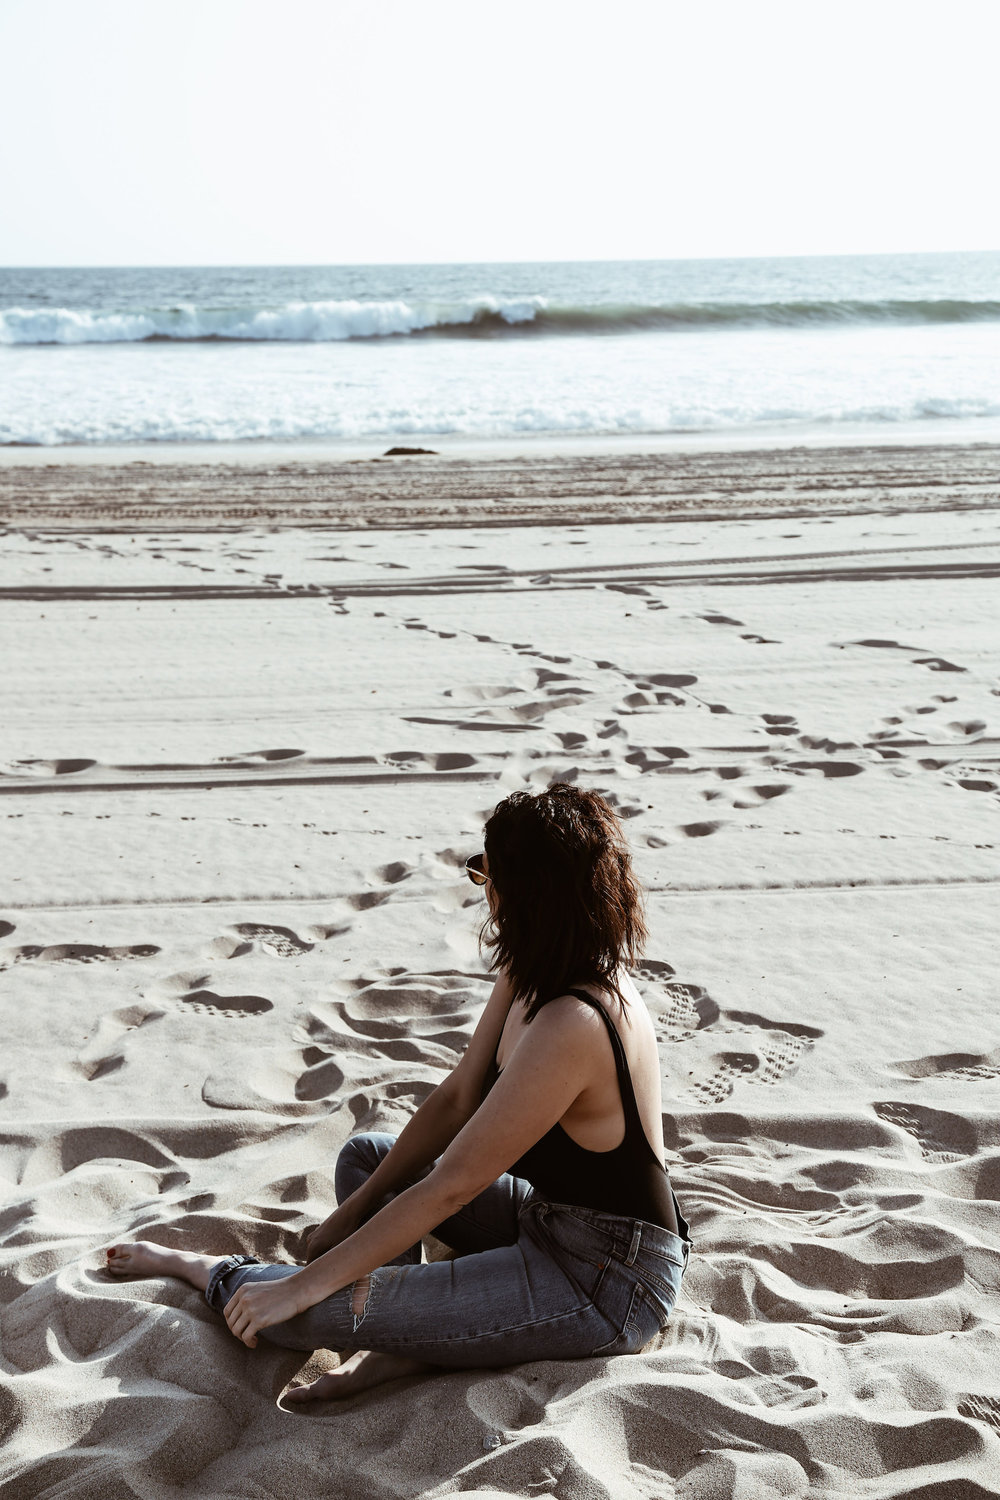 black+one-piece+swimsuit+and+levis+on+the+beach3.jpg